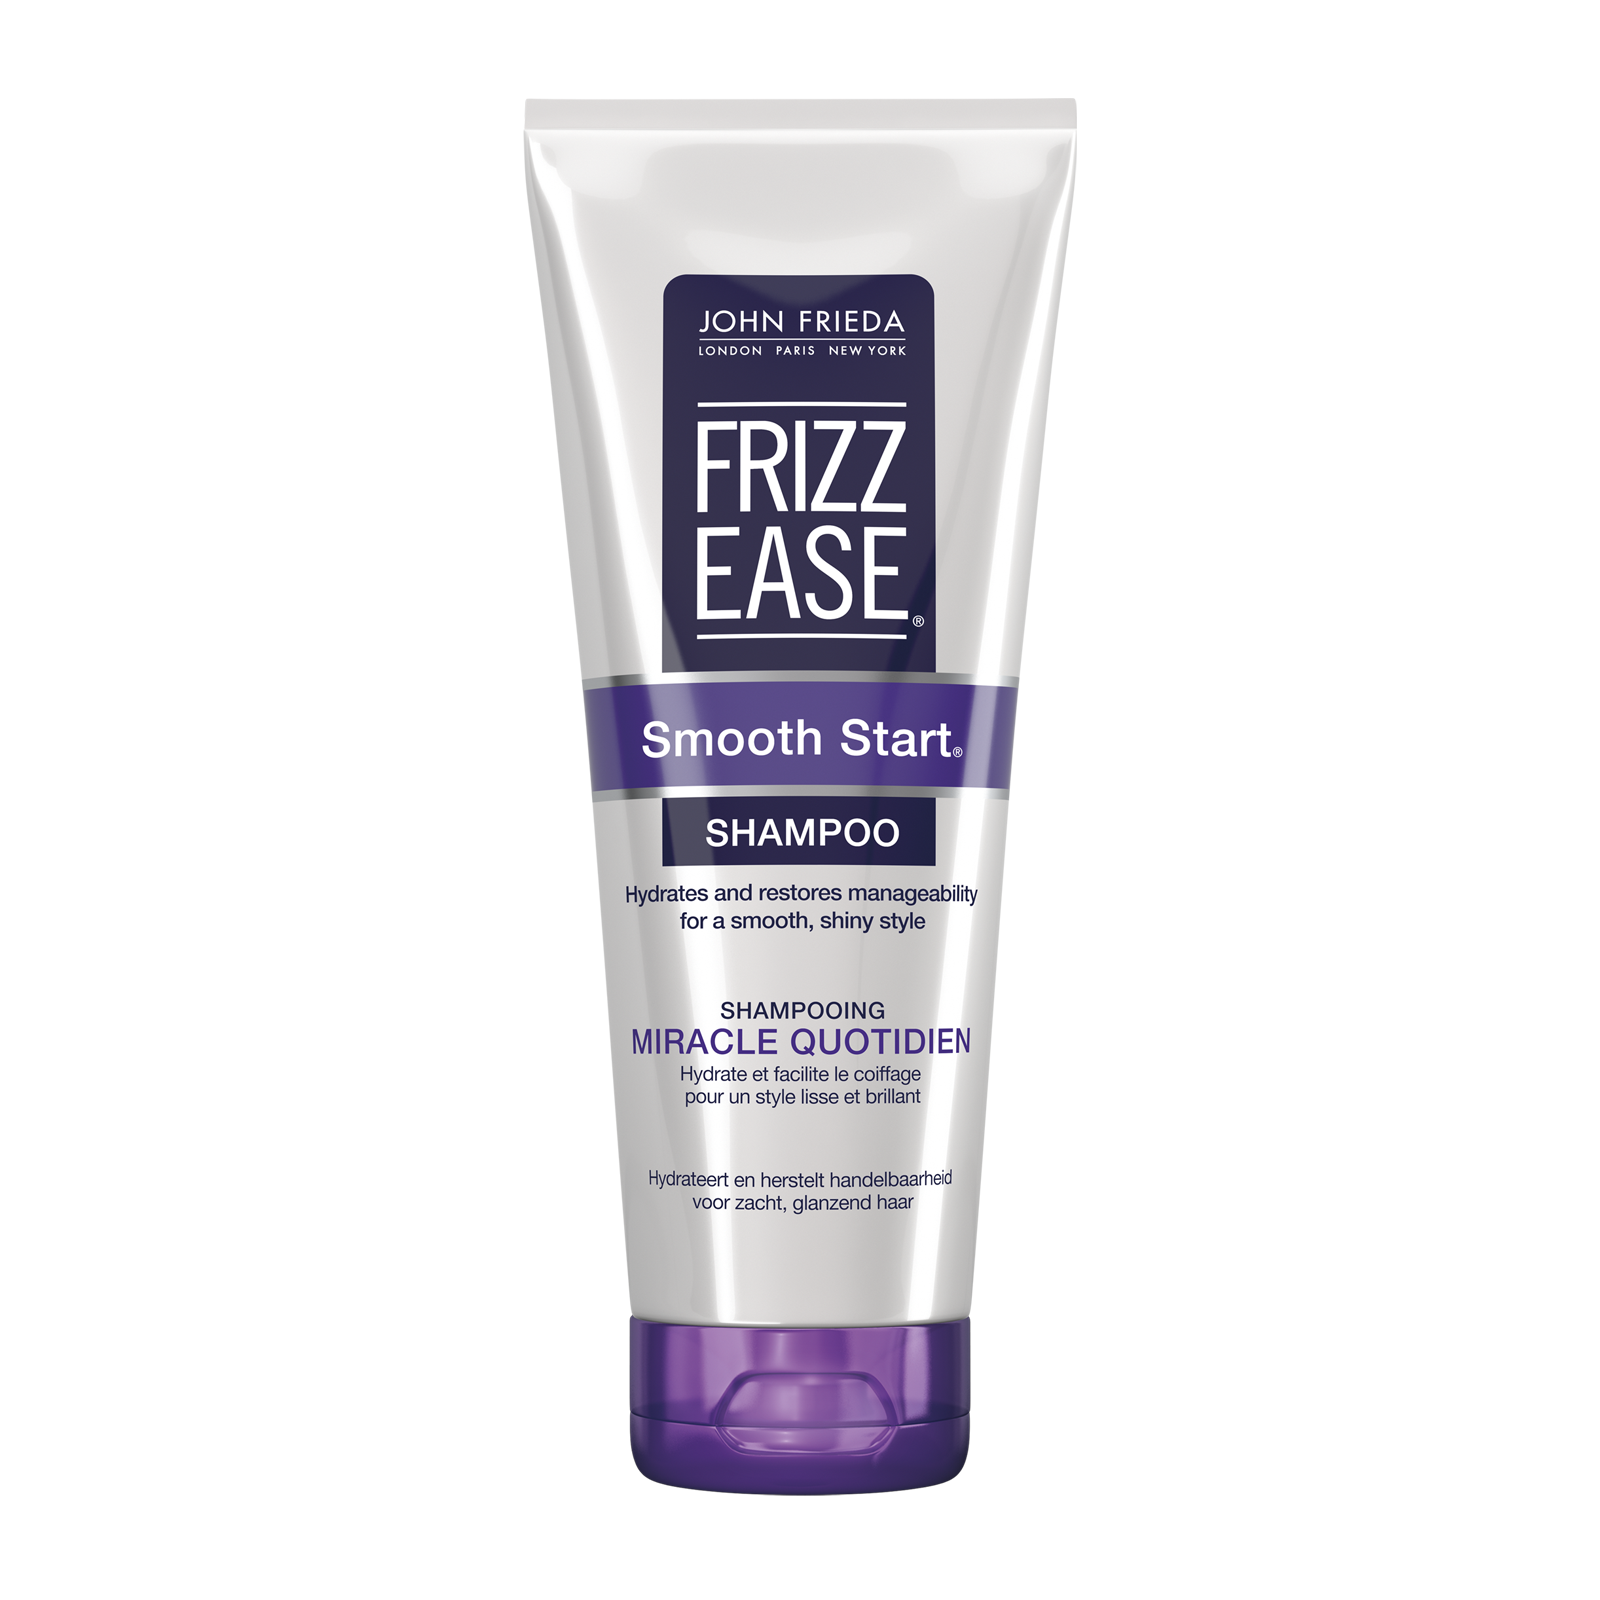 john frieda frizz ease smooth start shampoo 250ml. Black Bedroom Furniture Sets. Home Design Ideas